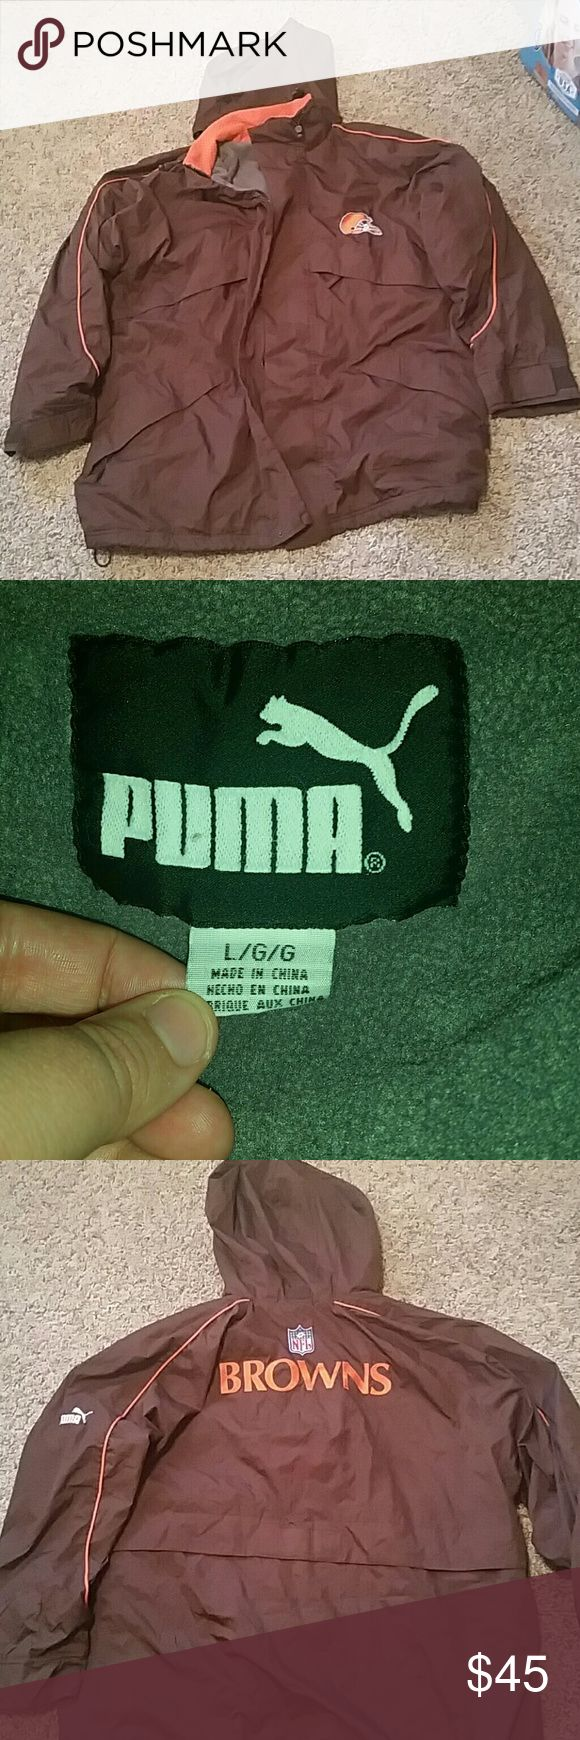 Puma size L NFL BROWNS jacket Puma size L NFL BROWNS jacket. Lined with fleece  ***Final Sale price! Puma Jackets & Coats